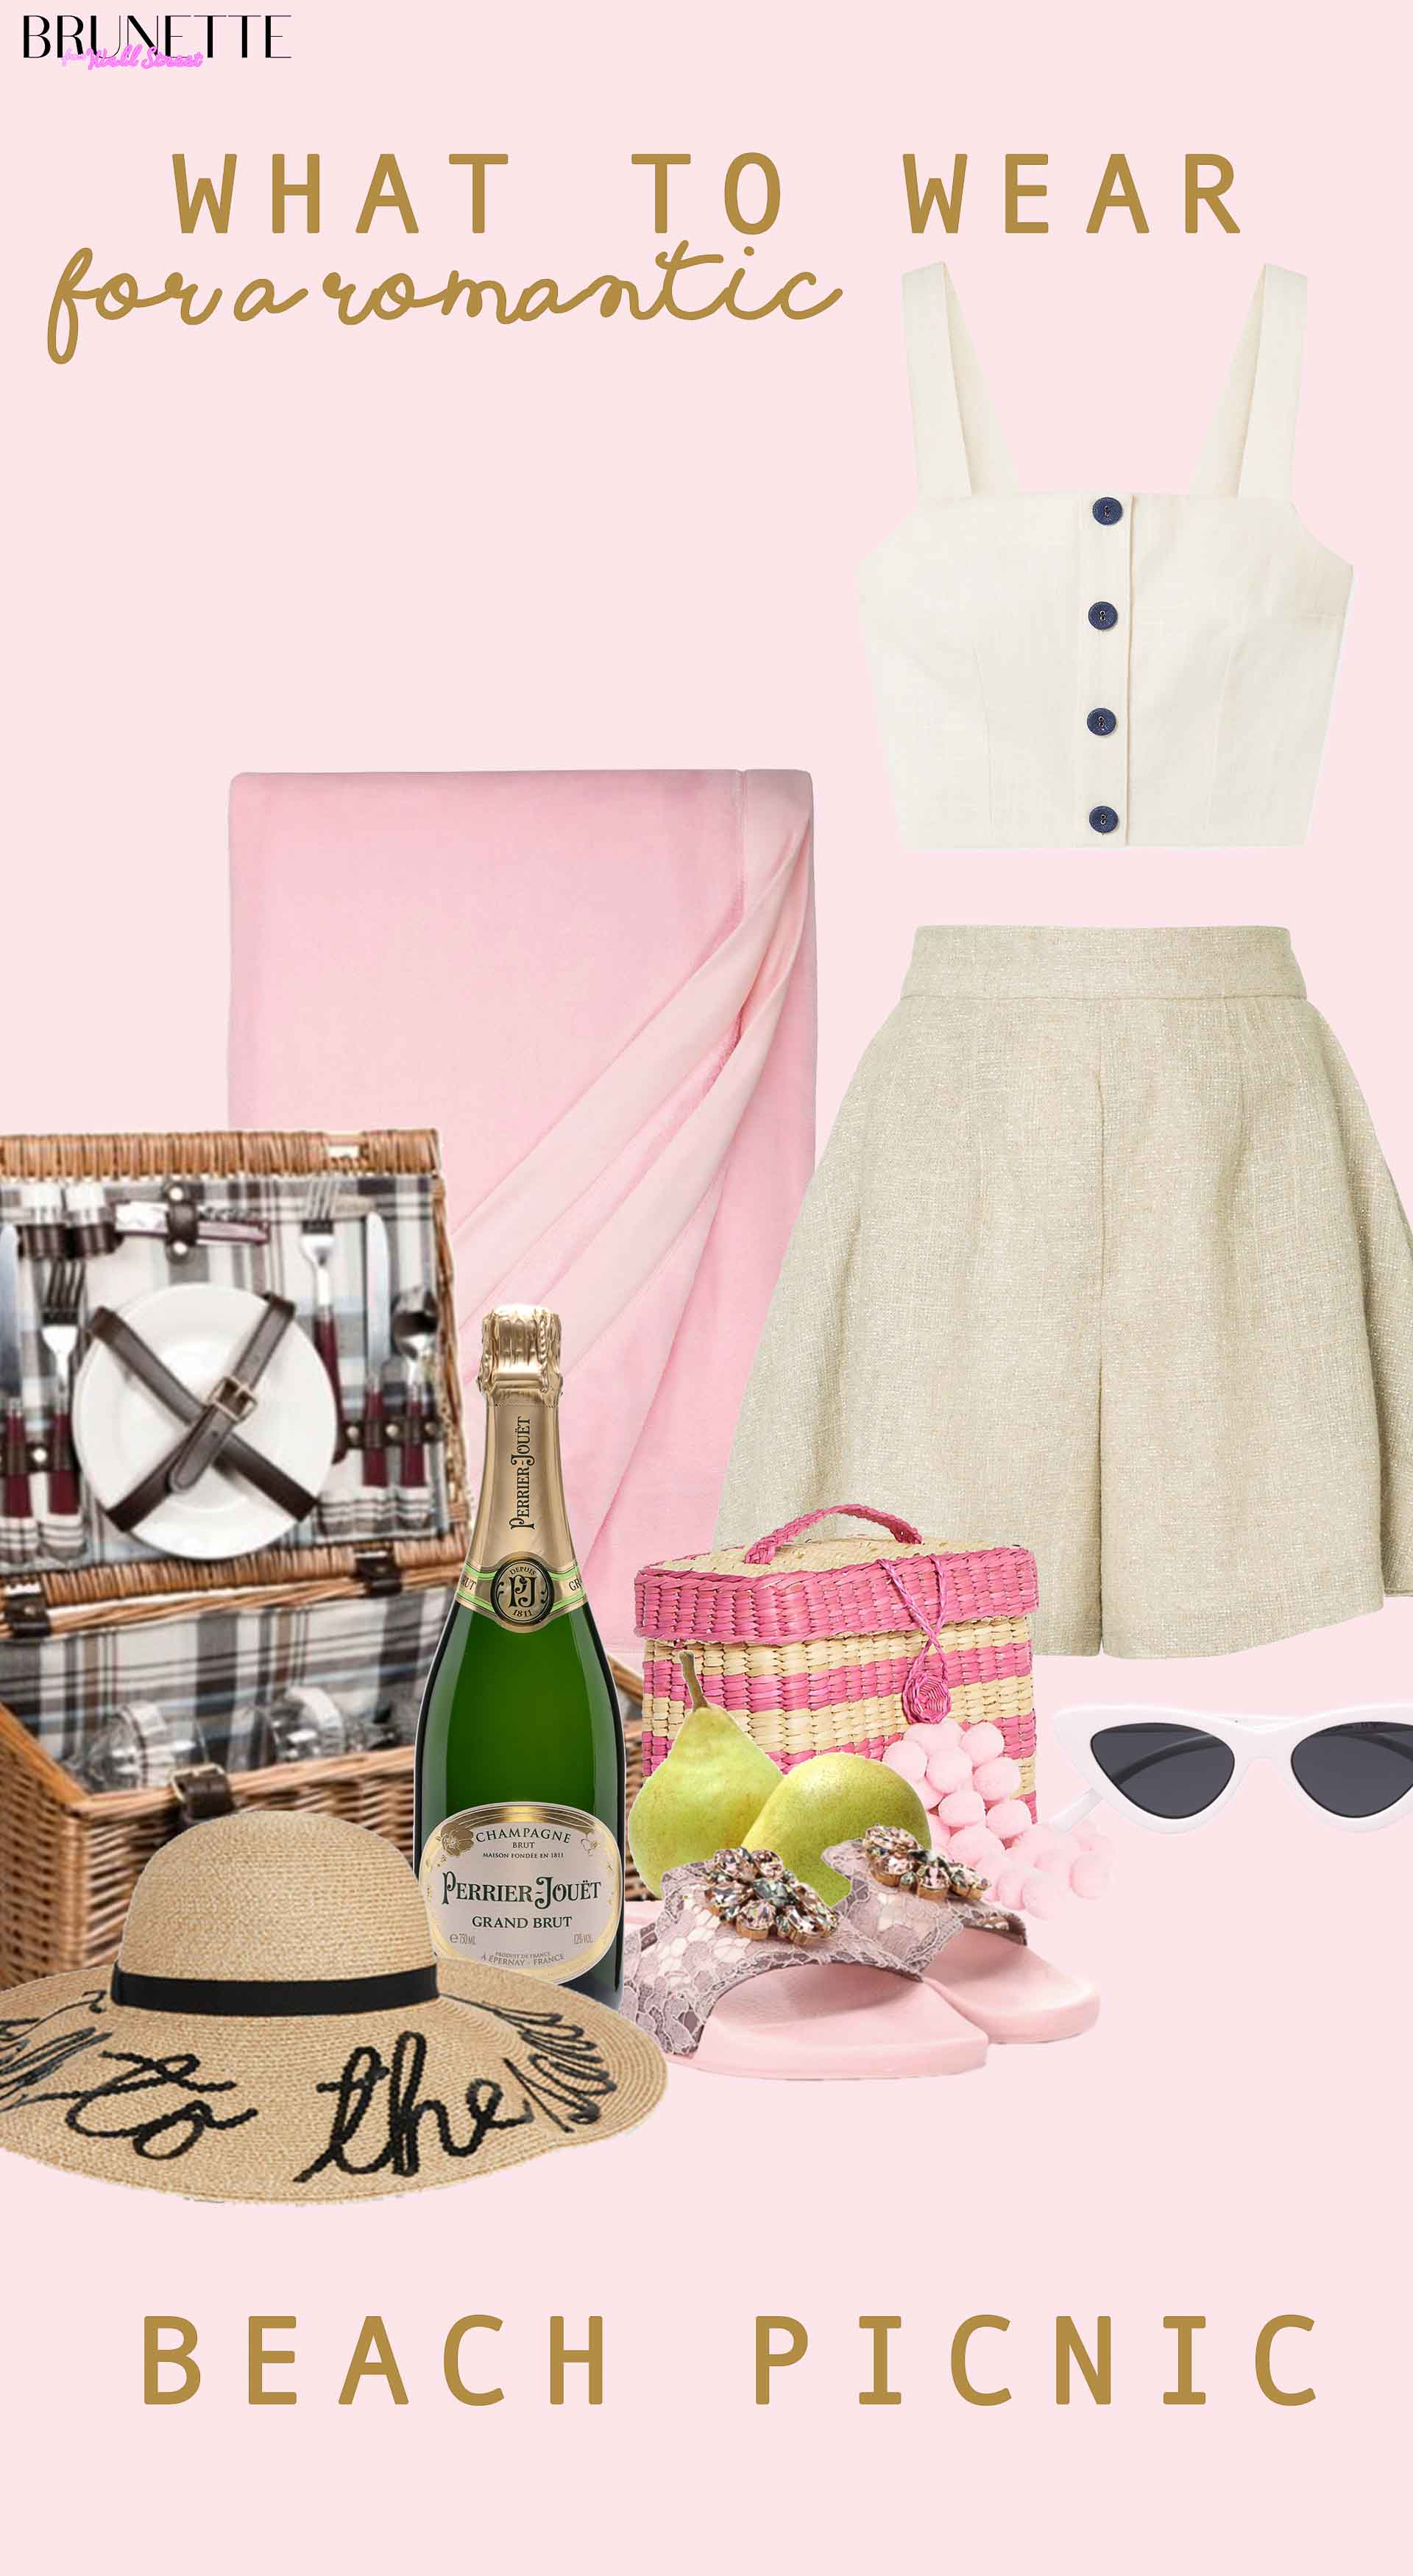 picnic basket, straw hat, Dolce Gabbana slides, Zimmerman shorts, Staud crop top, Nannacay basket bag, pink picnic blanket, champagne, Le Specs cat eye sunglasses with text overlay What to wear for a romantic beach picnic